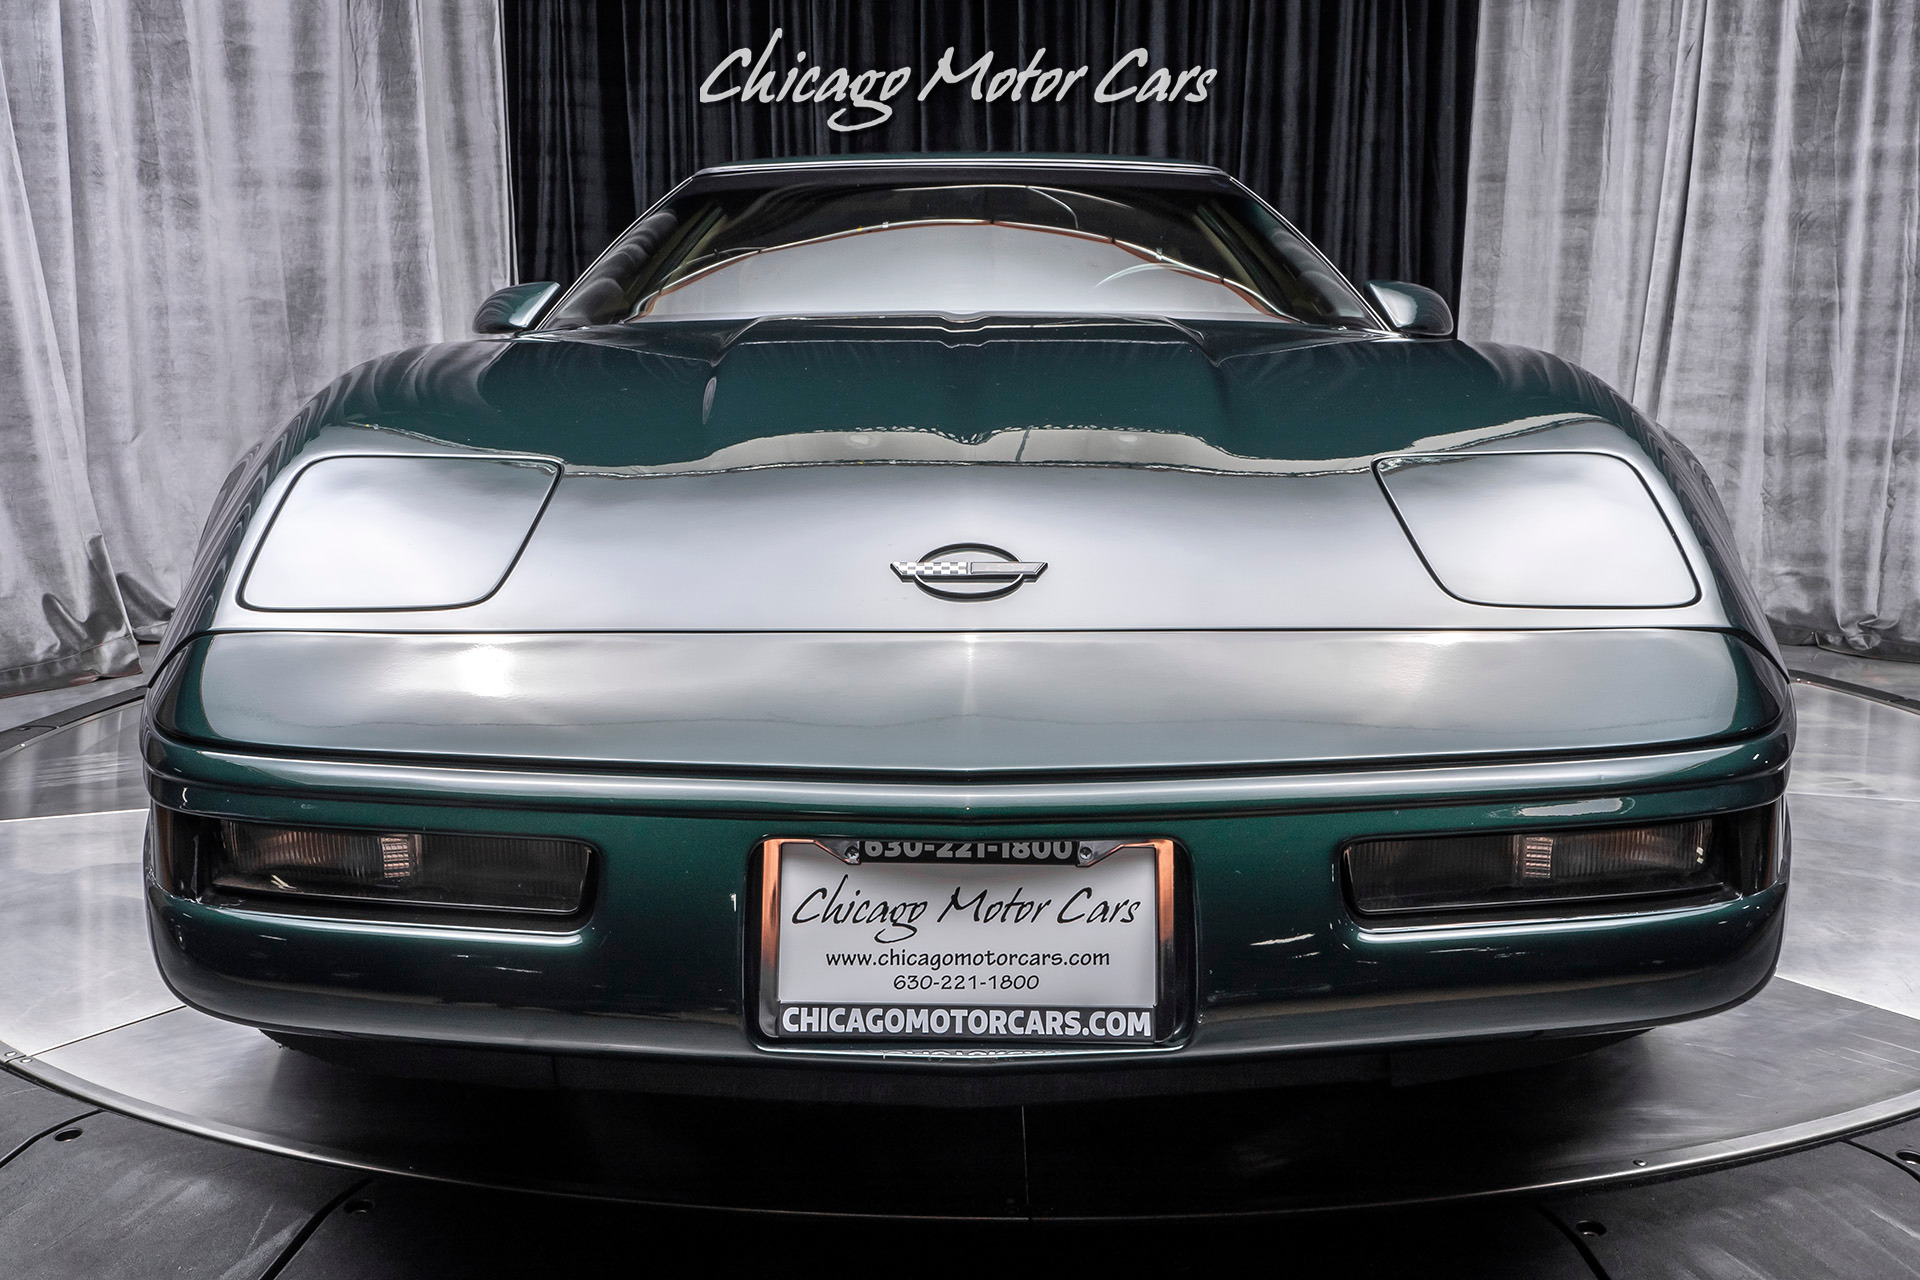 Used-1993-Chevrolet-Corvette-LT1-Supercharged-Coupe-VORTECH-SUPERCHARGER